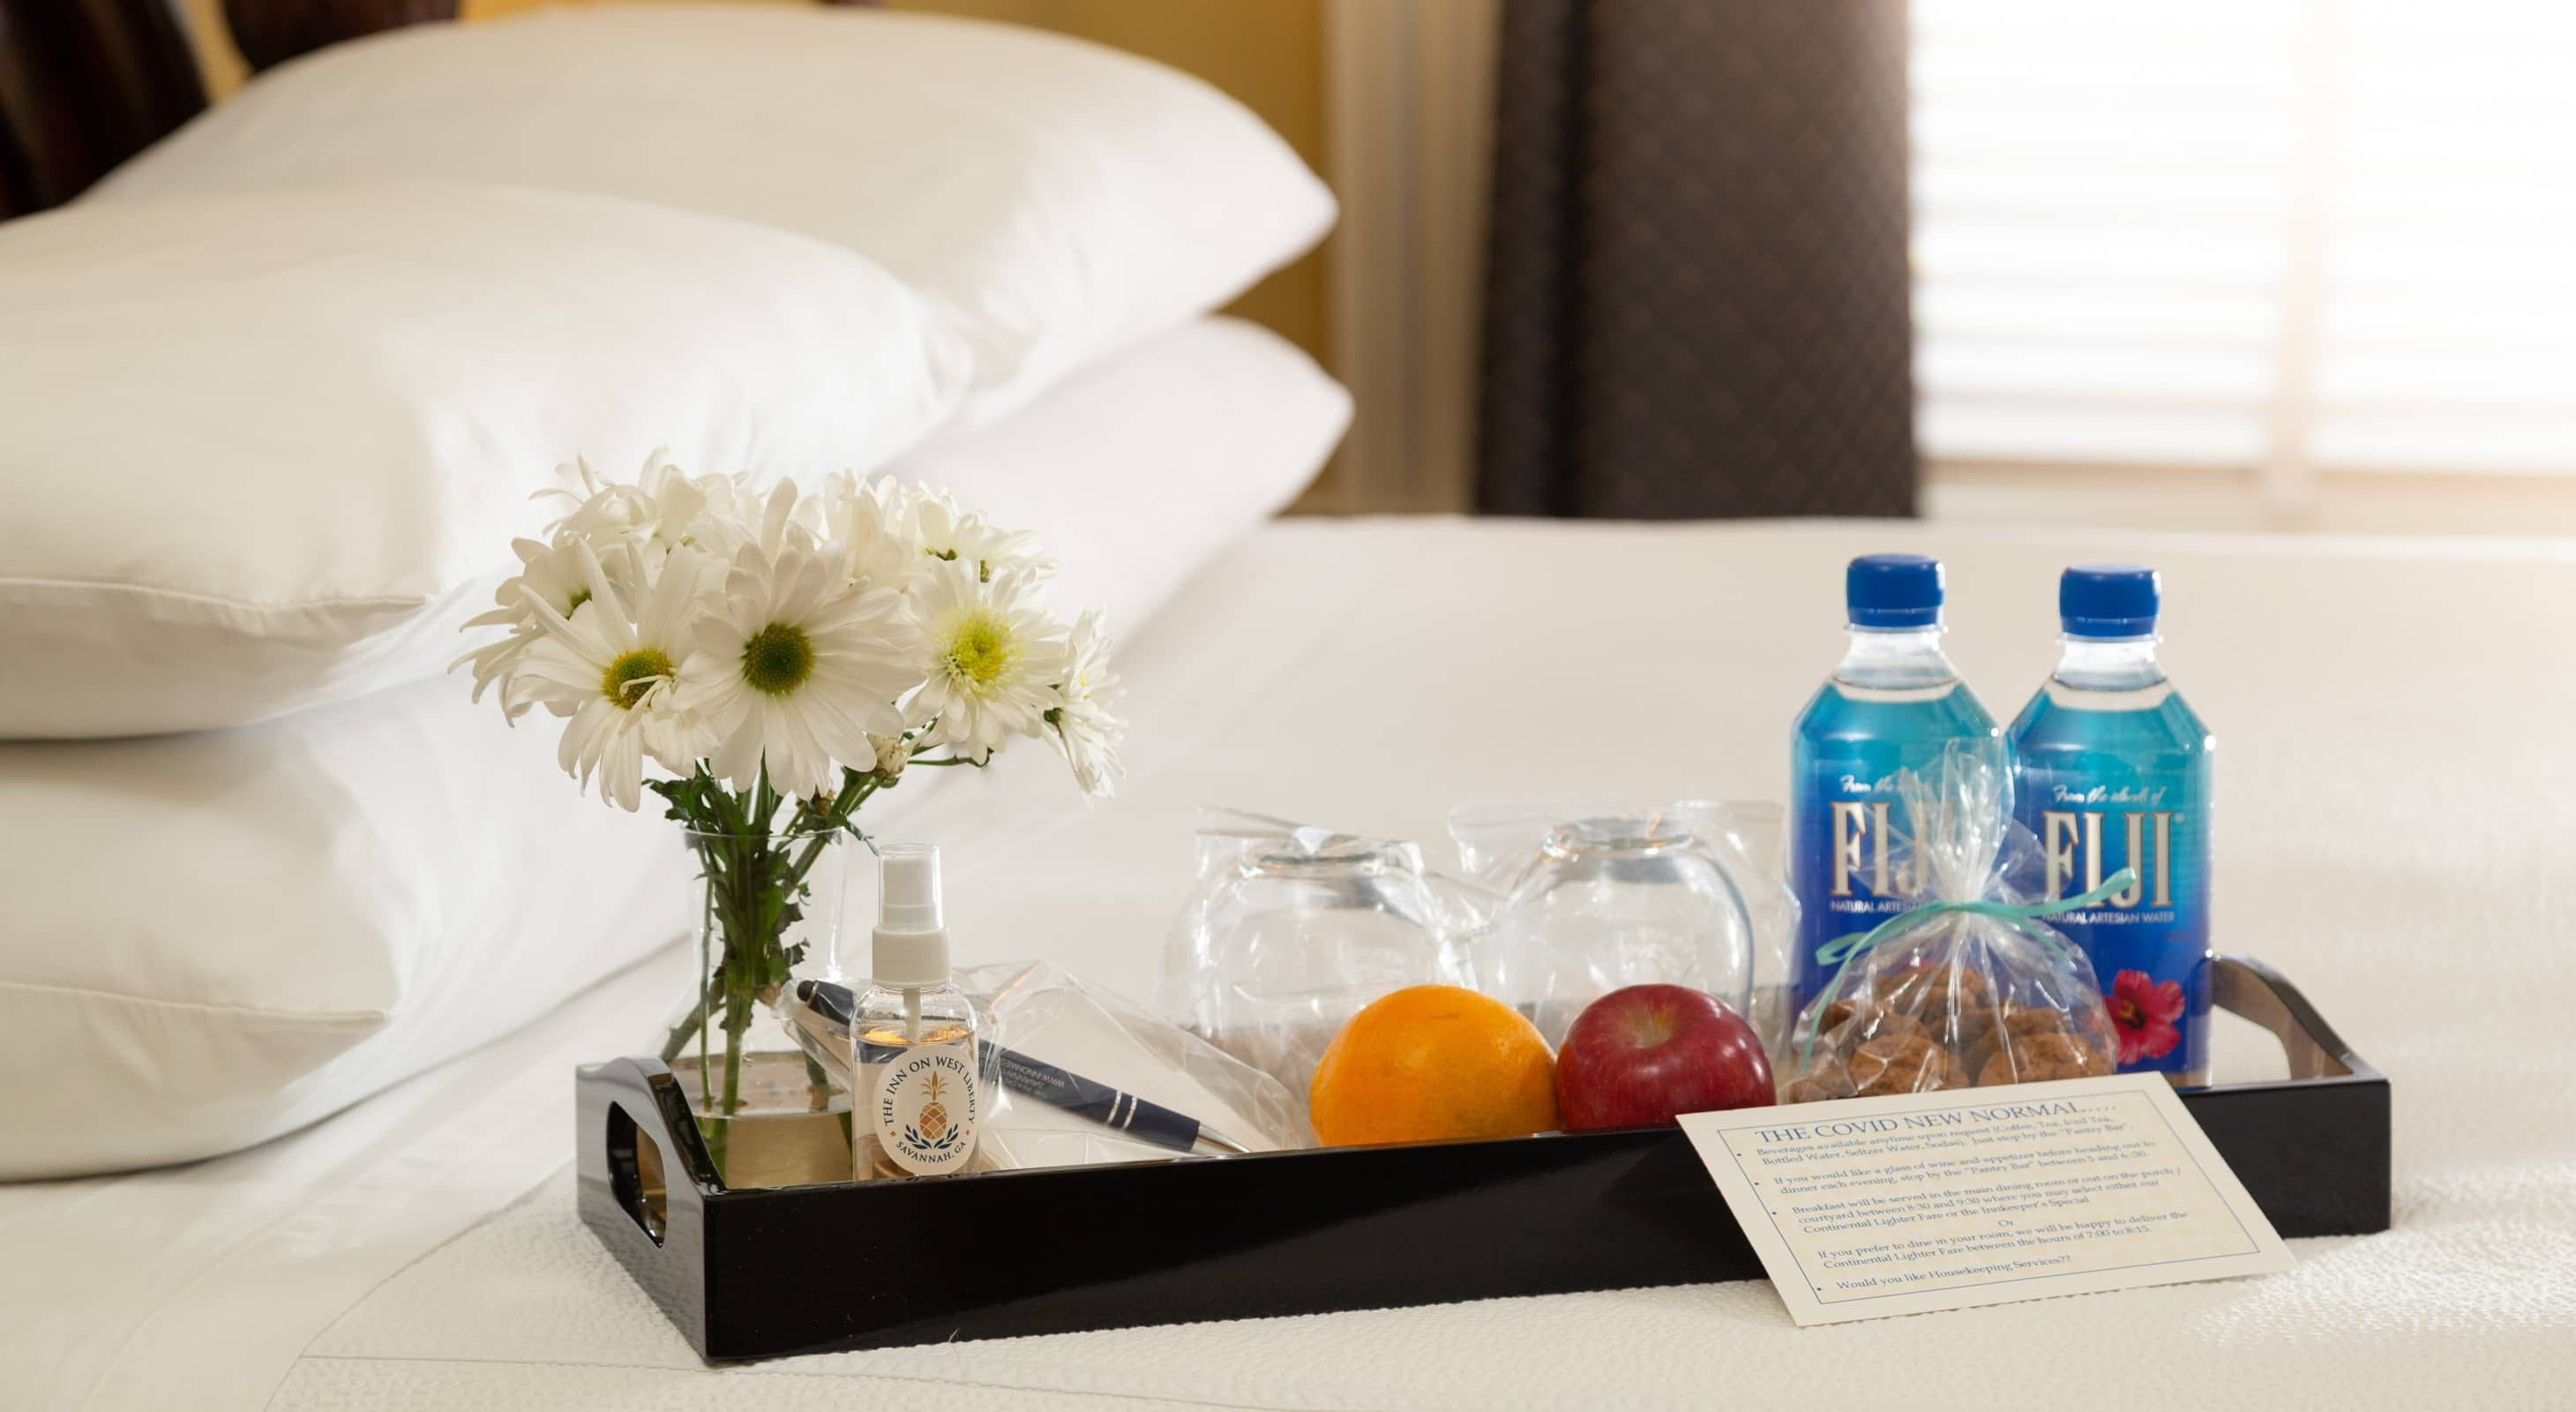 A refreshments tray with fruit, individually wrapped cookies, Fiji bottled water, hand sanitizer and flowers on a bed with white pillows and white linens